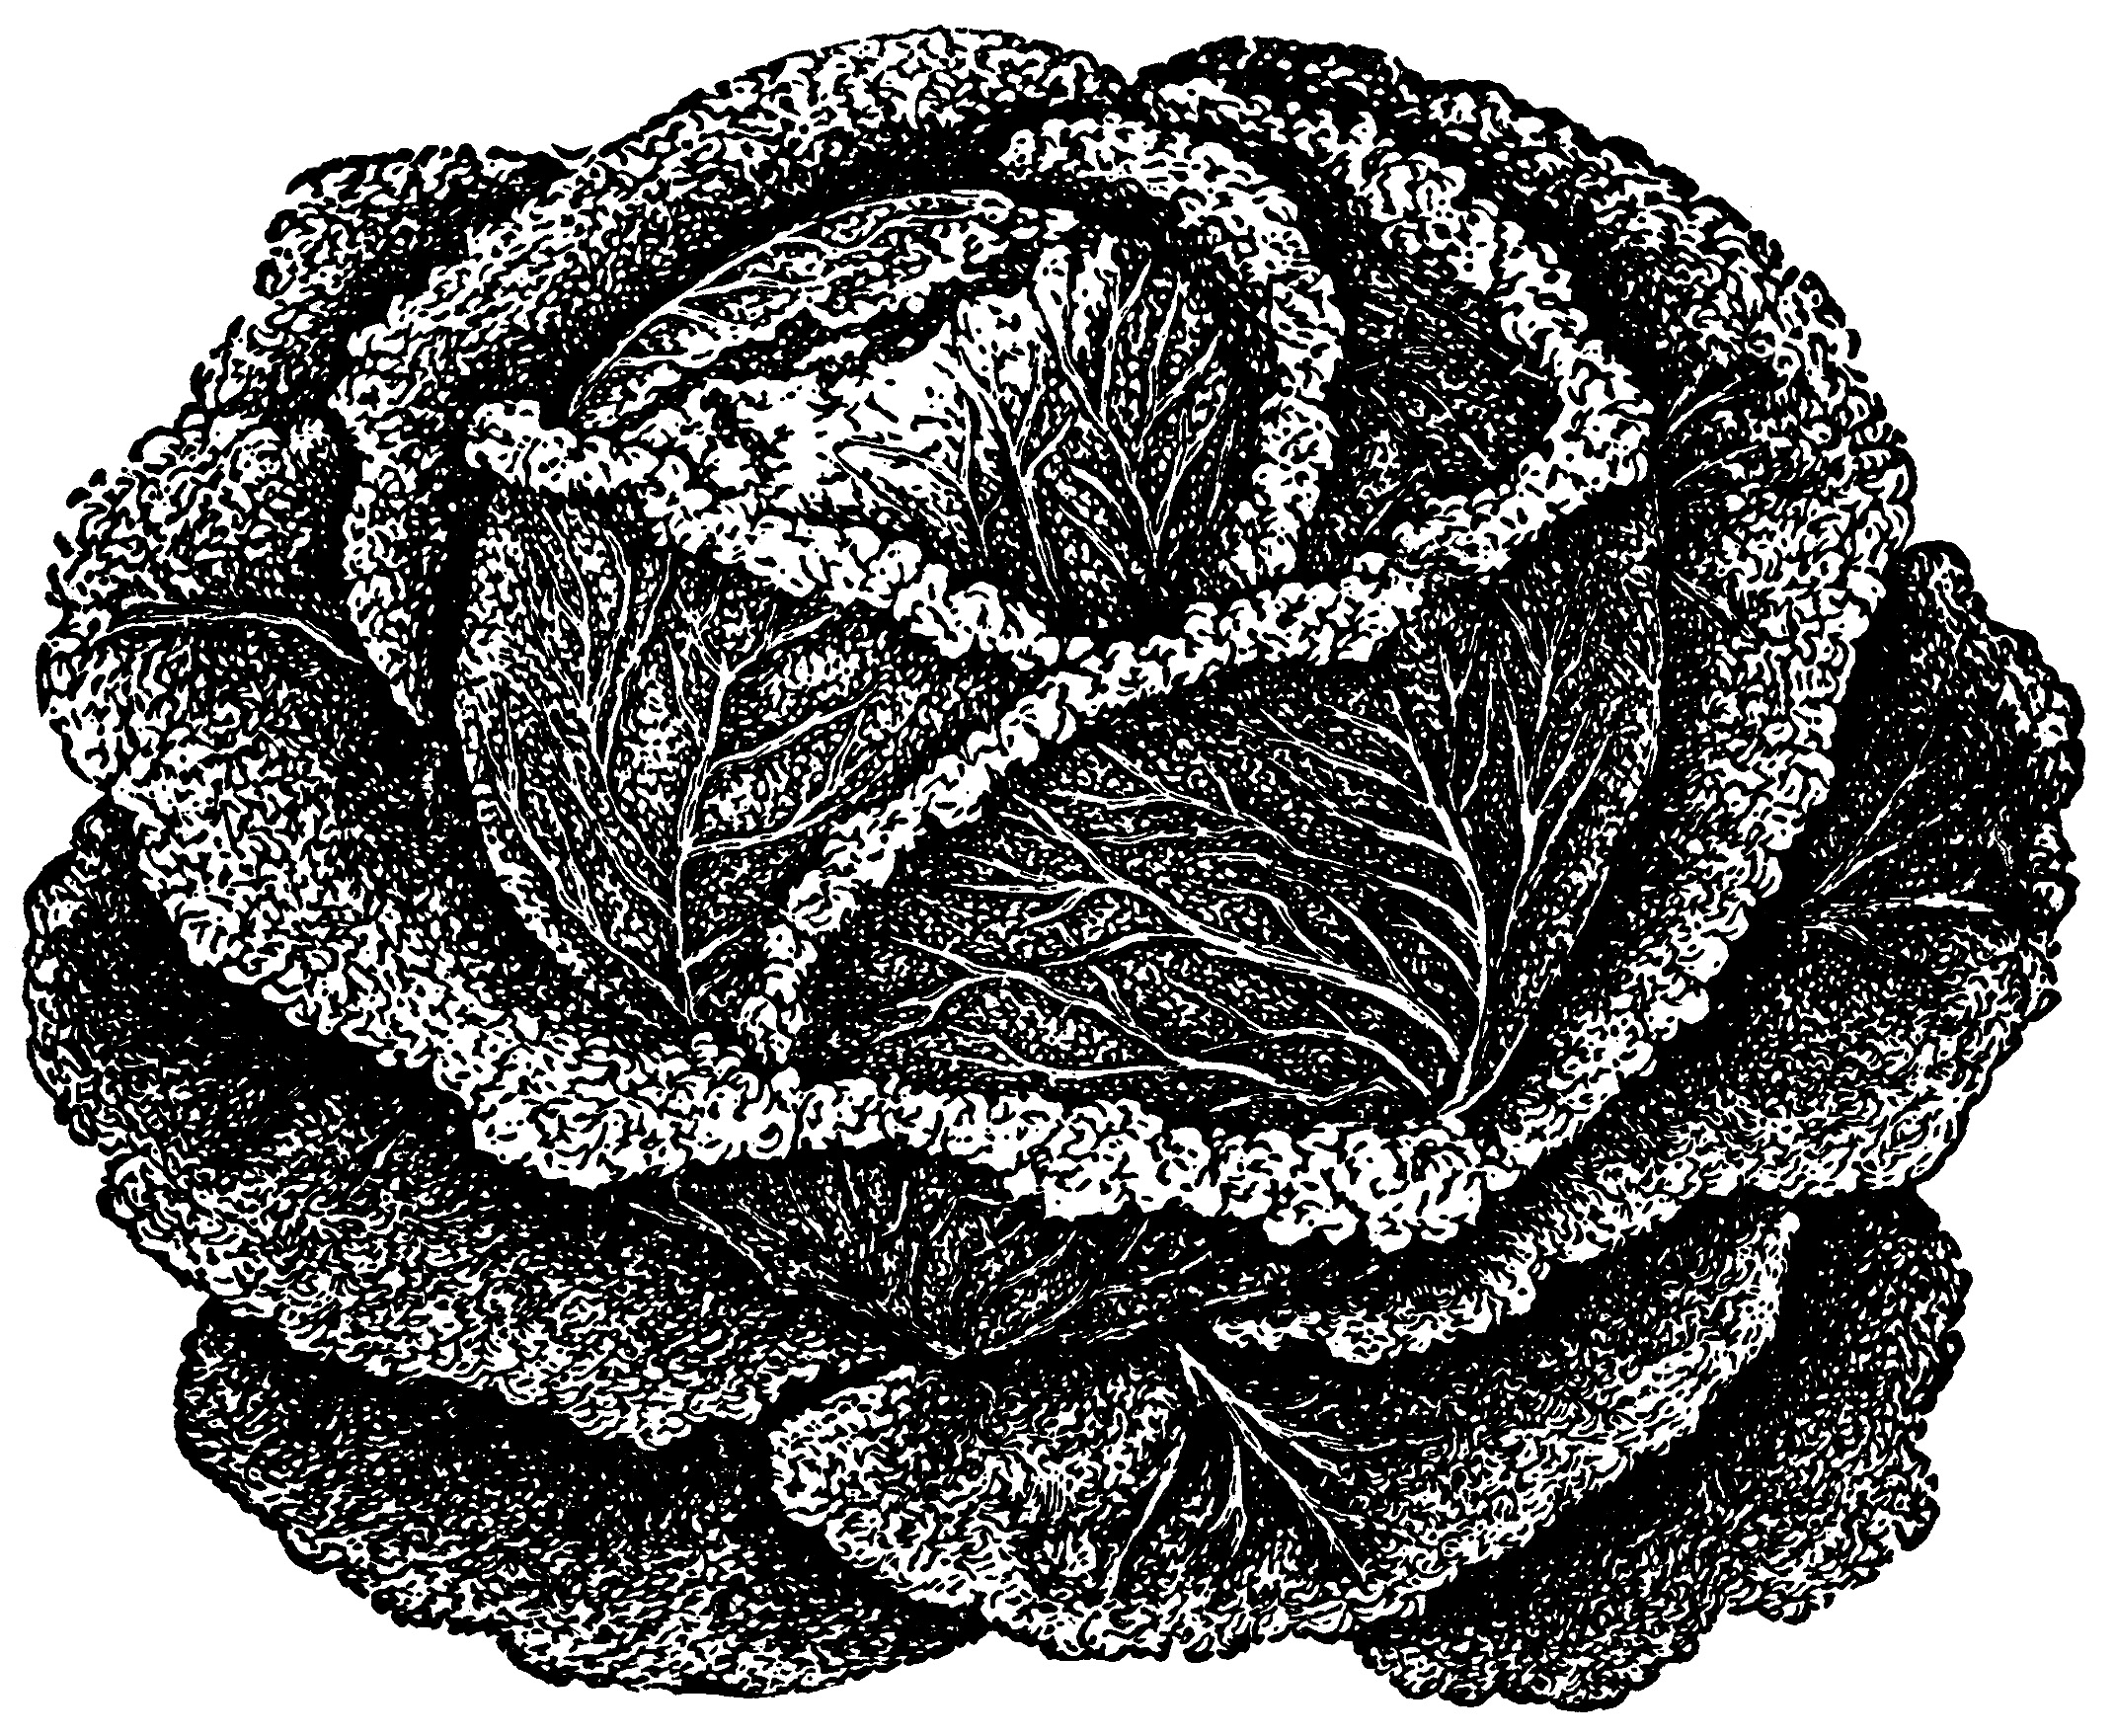 Vintage vegetable clipart black and white jpg free library Cabbage Clip Art - Old Design Shop Blog jpg free library